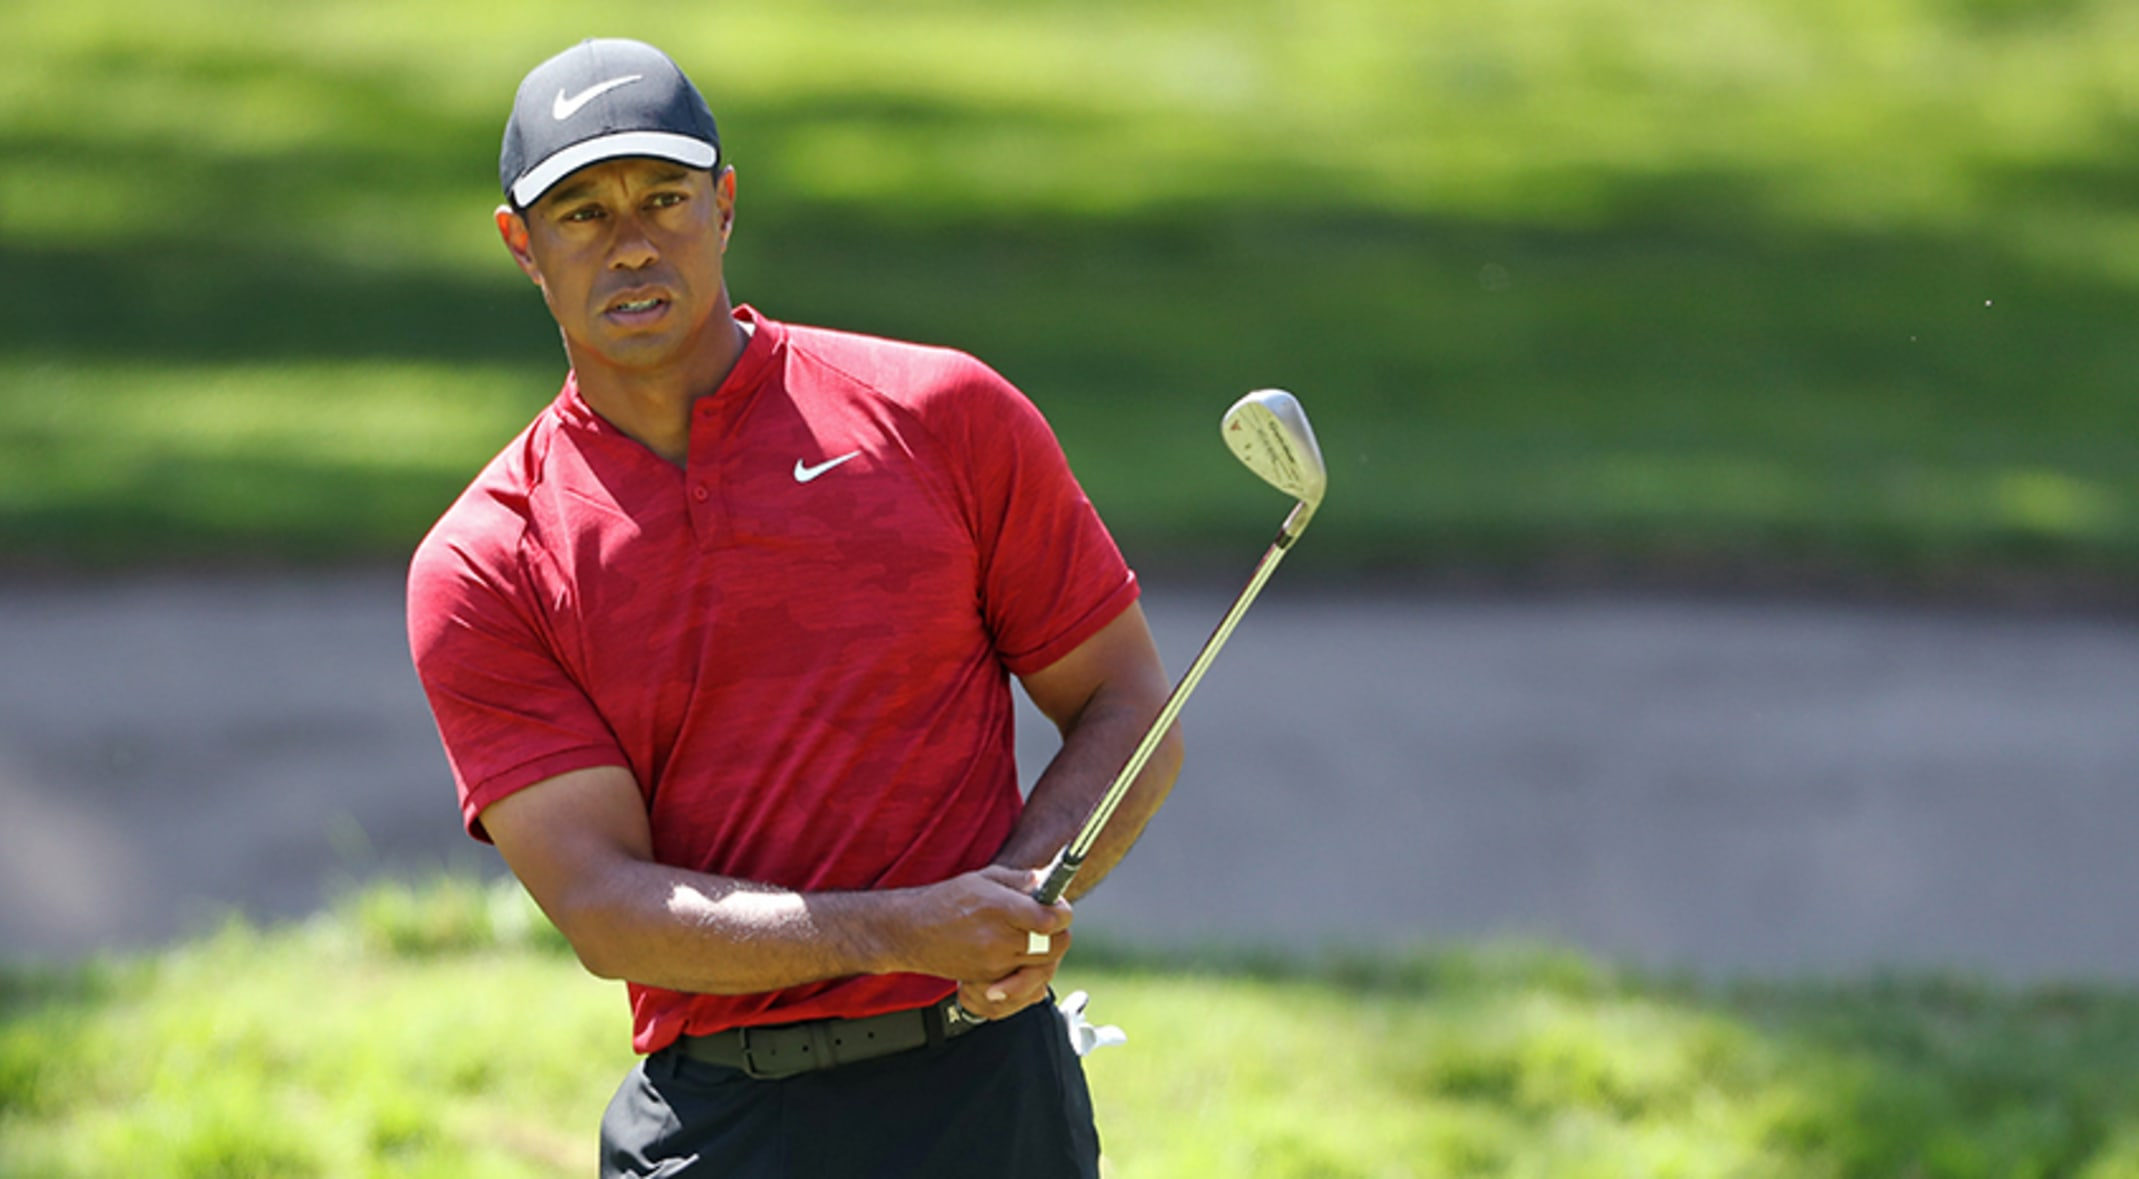 Tiger Woods won the Arnold Palmer Invitational presented by Mastercard eight times. (David Cannon